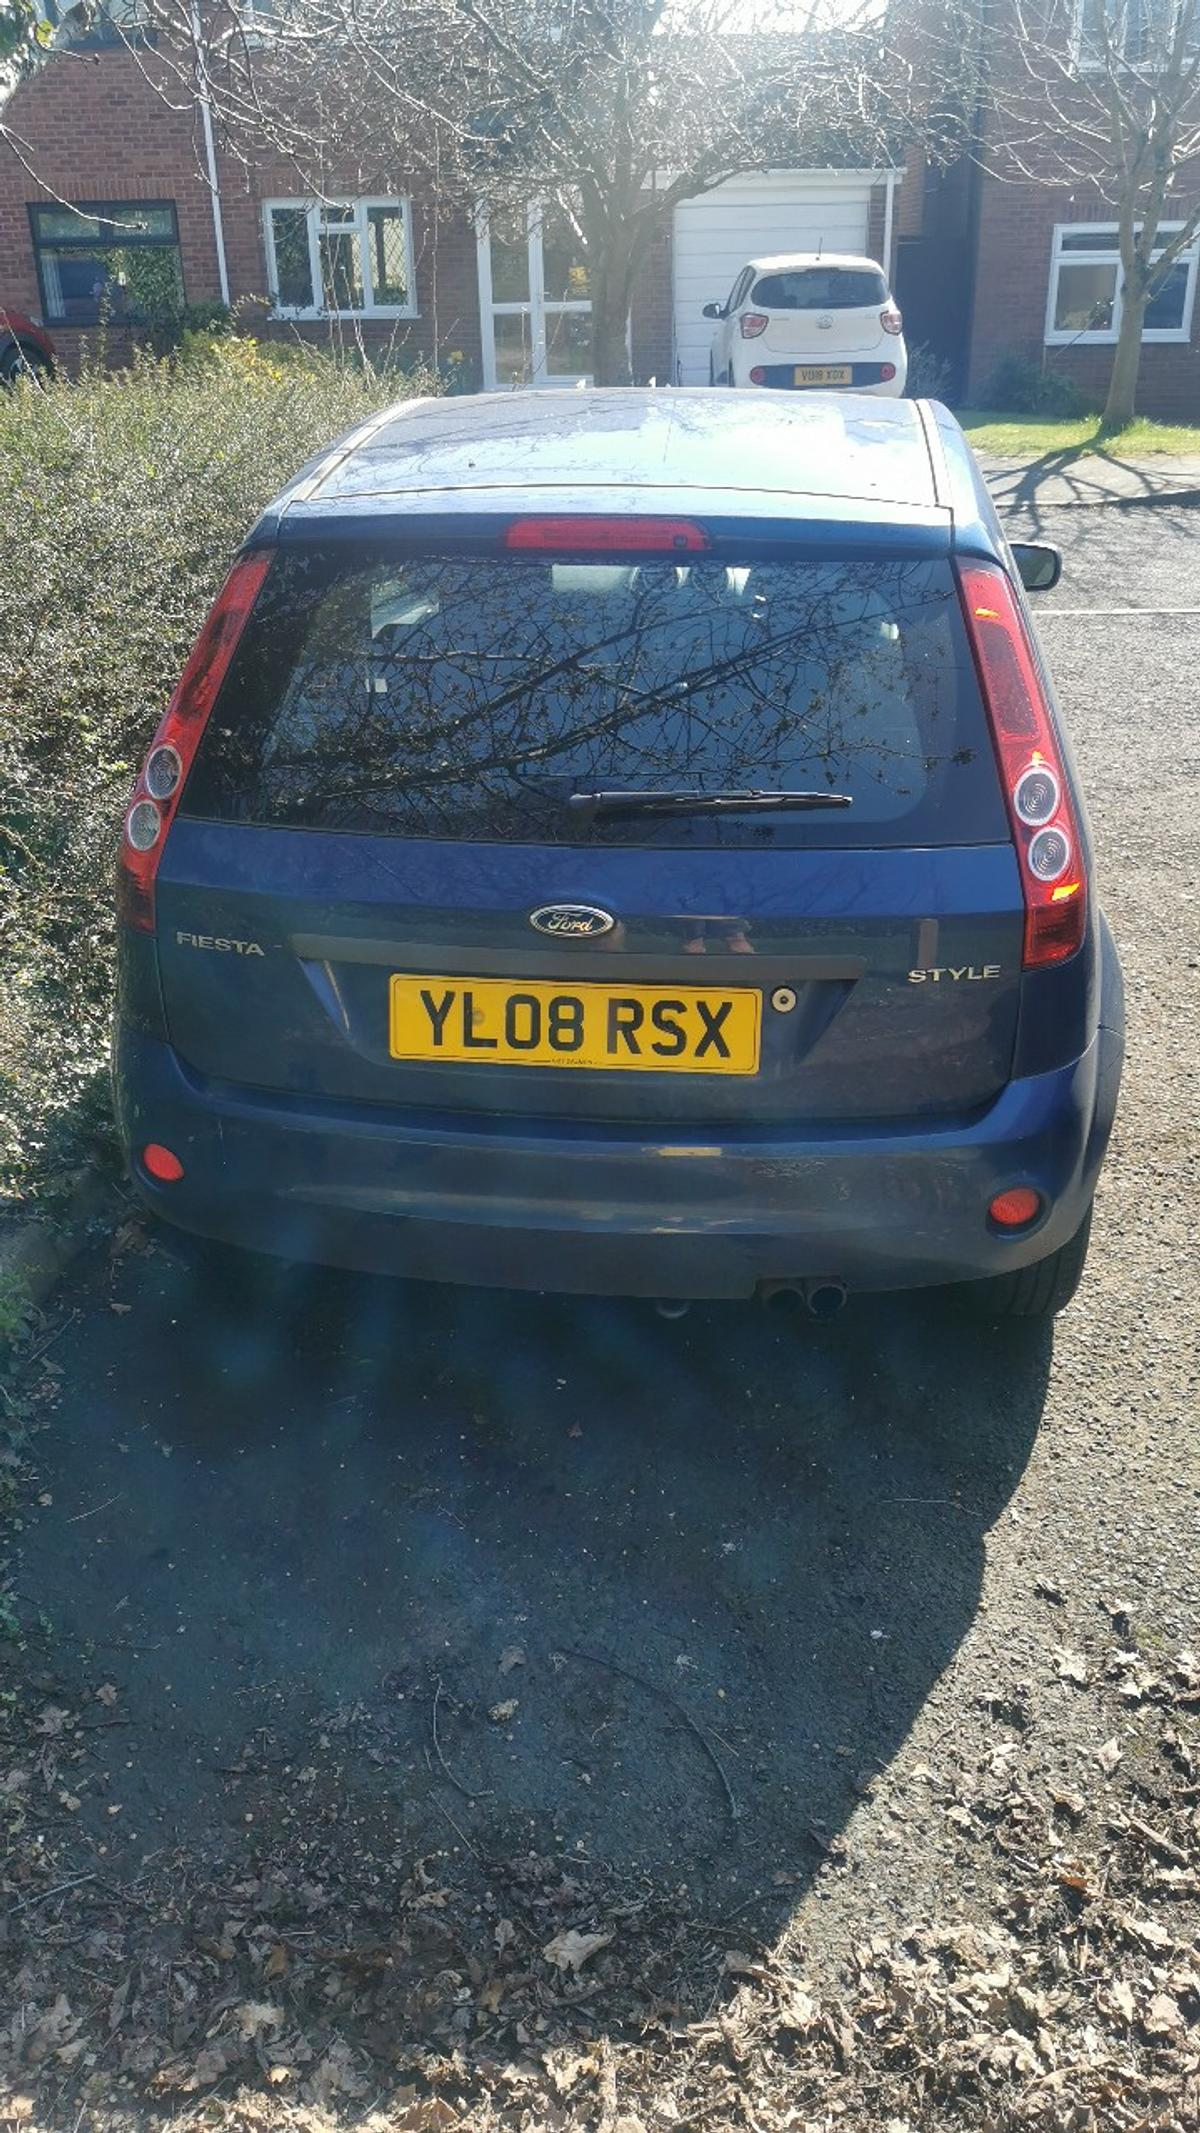 For Sale  Ford Fiesta 2008 3 owners from new Ideal first car or cheap run about. Only selling as daughter used to build up no claims and now brought new car. Dash cam fitted Bluetooth kit fitted Aux 3.5 jack point fitted 111000 miles below for age MOT 27/07/2020 Recent new master cylinder 4 new tyres New battery New radiator and pipe work 2 keys  £700